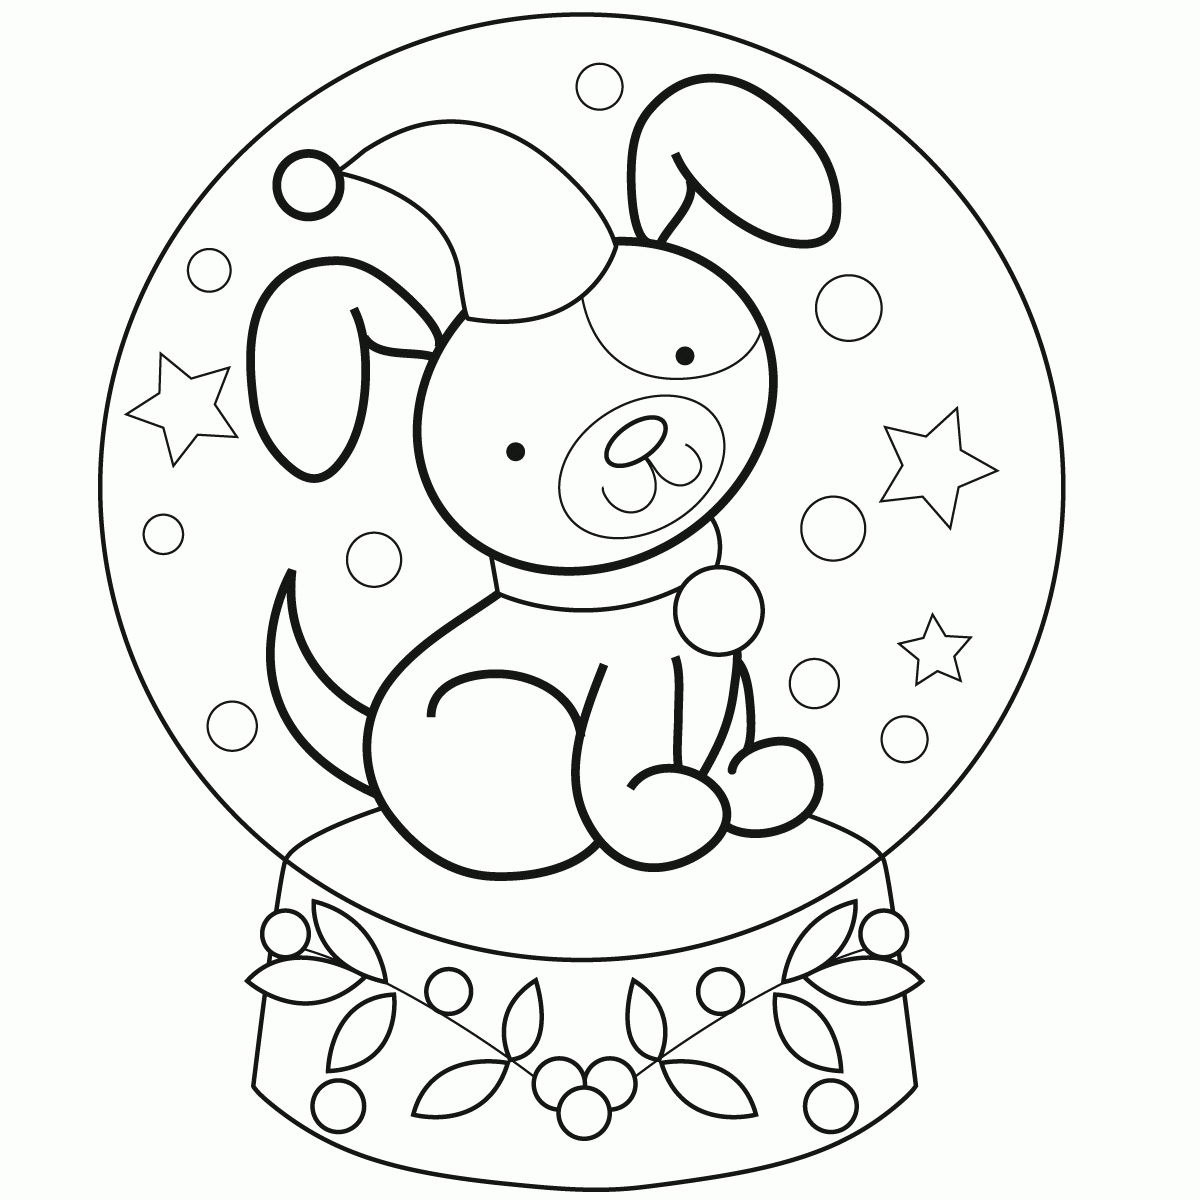 Little Boy Coloring Pages - Snow Globe Coloring Page Kids Coloring